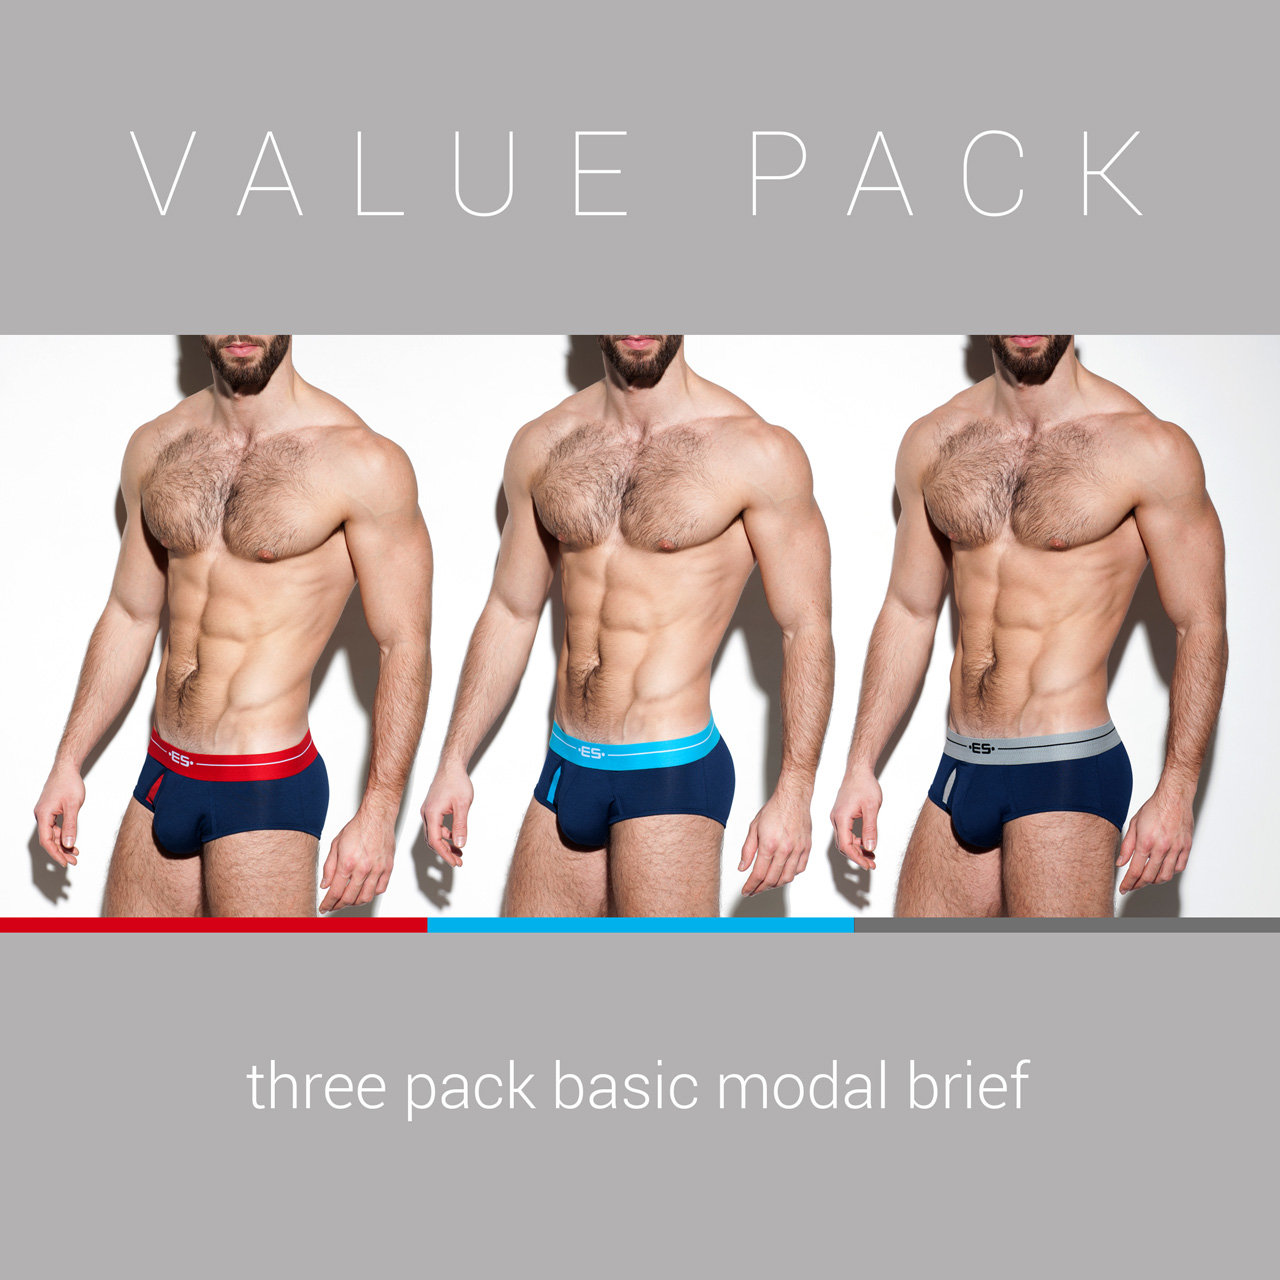 3 PACK BASIC MODAL BRIEF 3 COLOURS